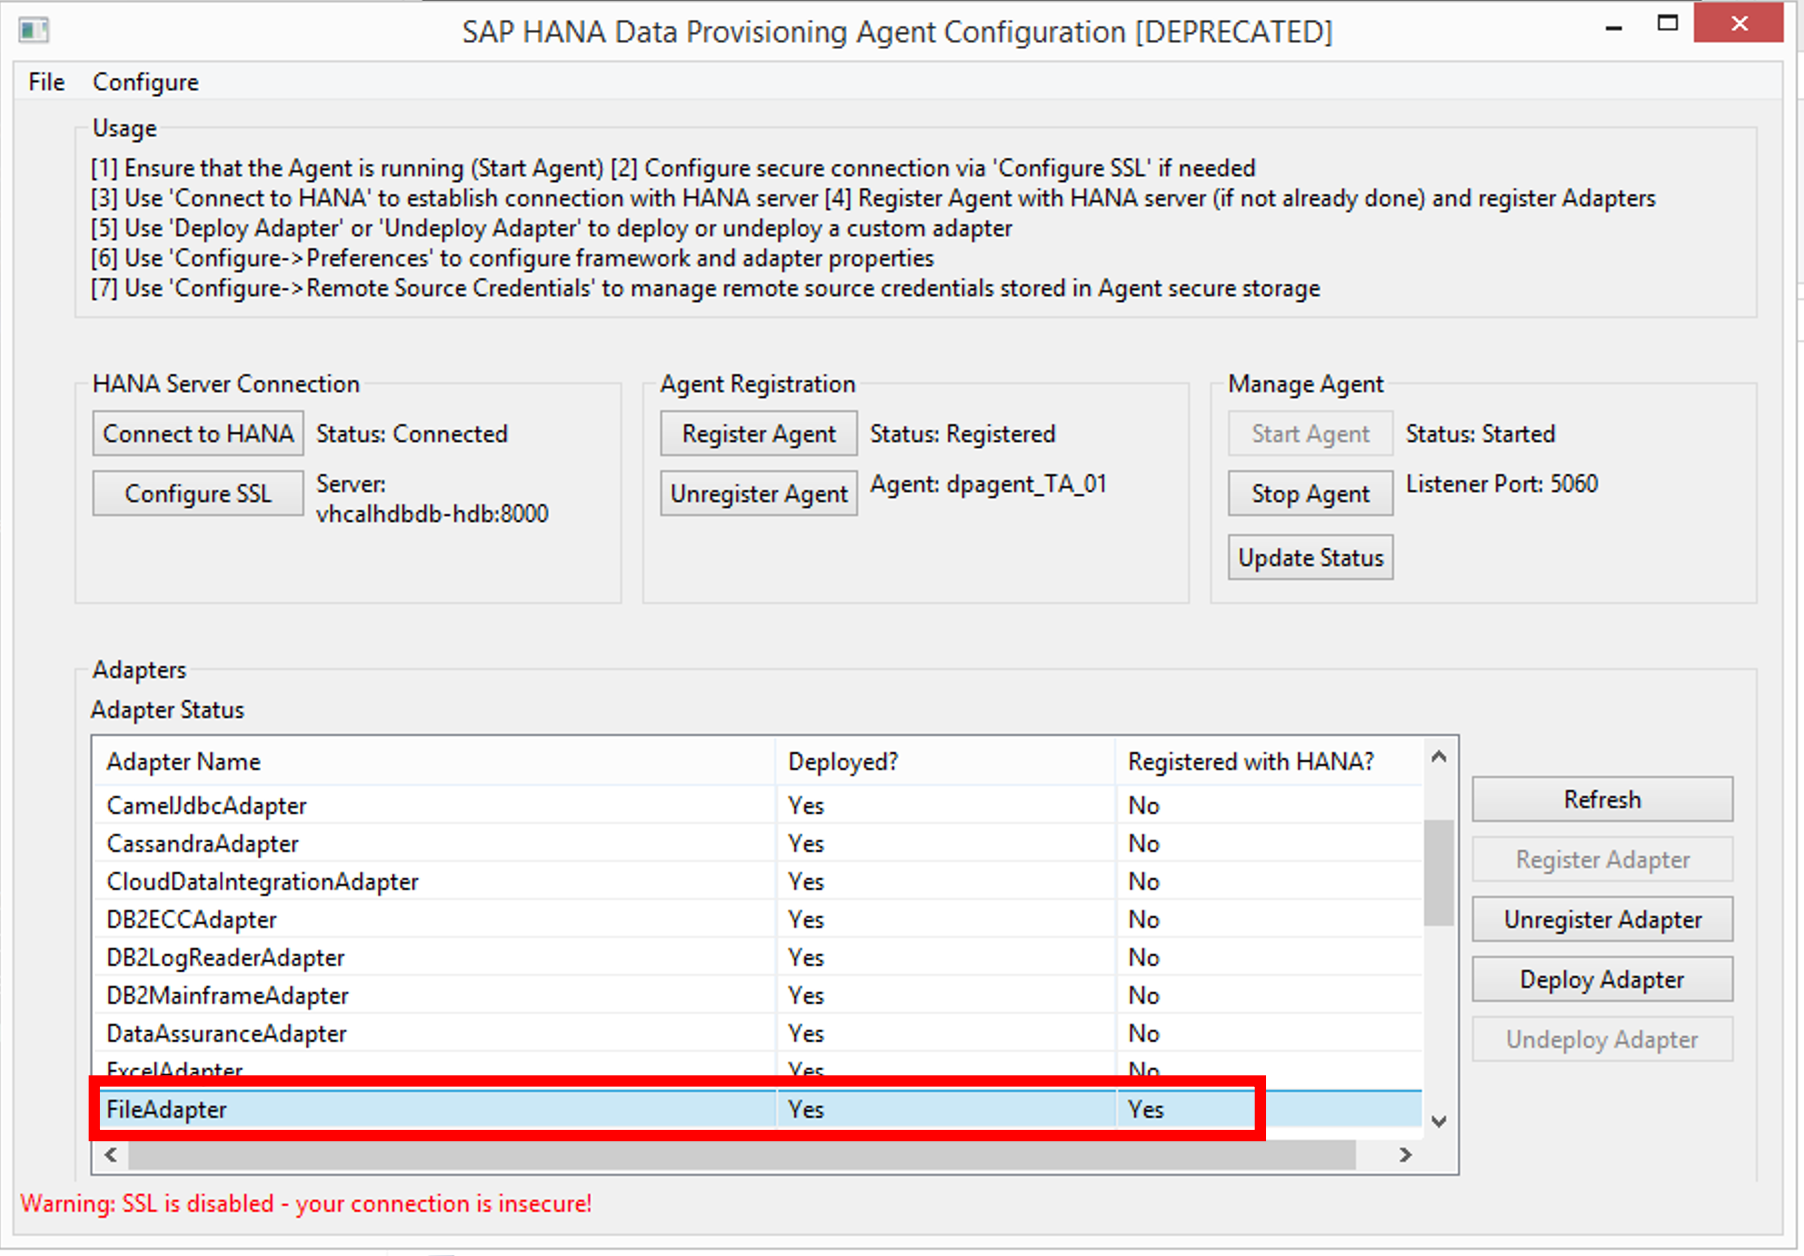 File%20Adapter%20deployed%20and%20registered%20with%20HANA